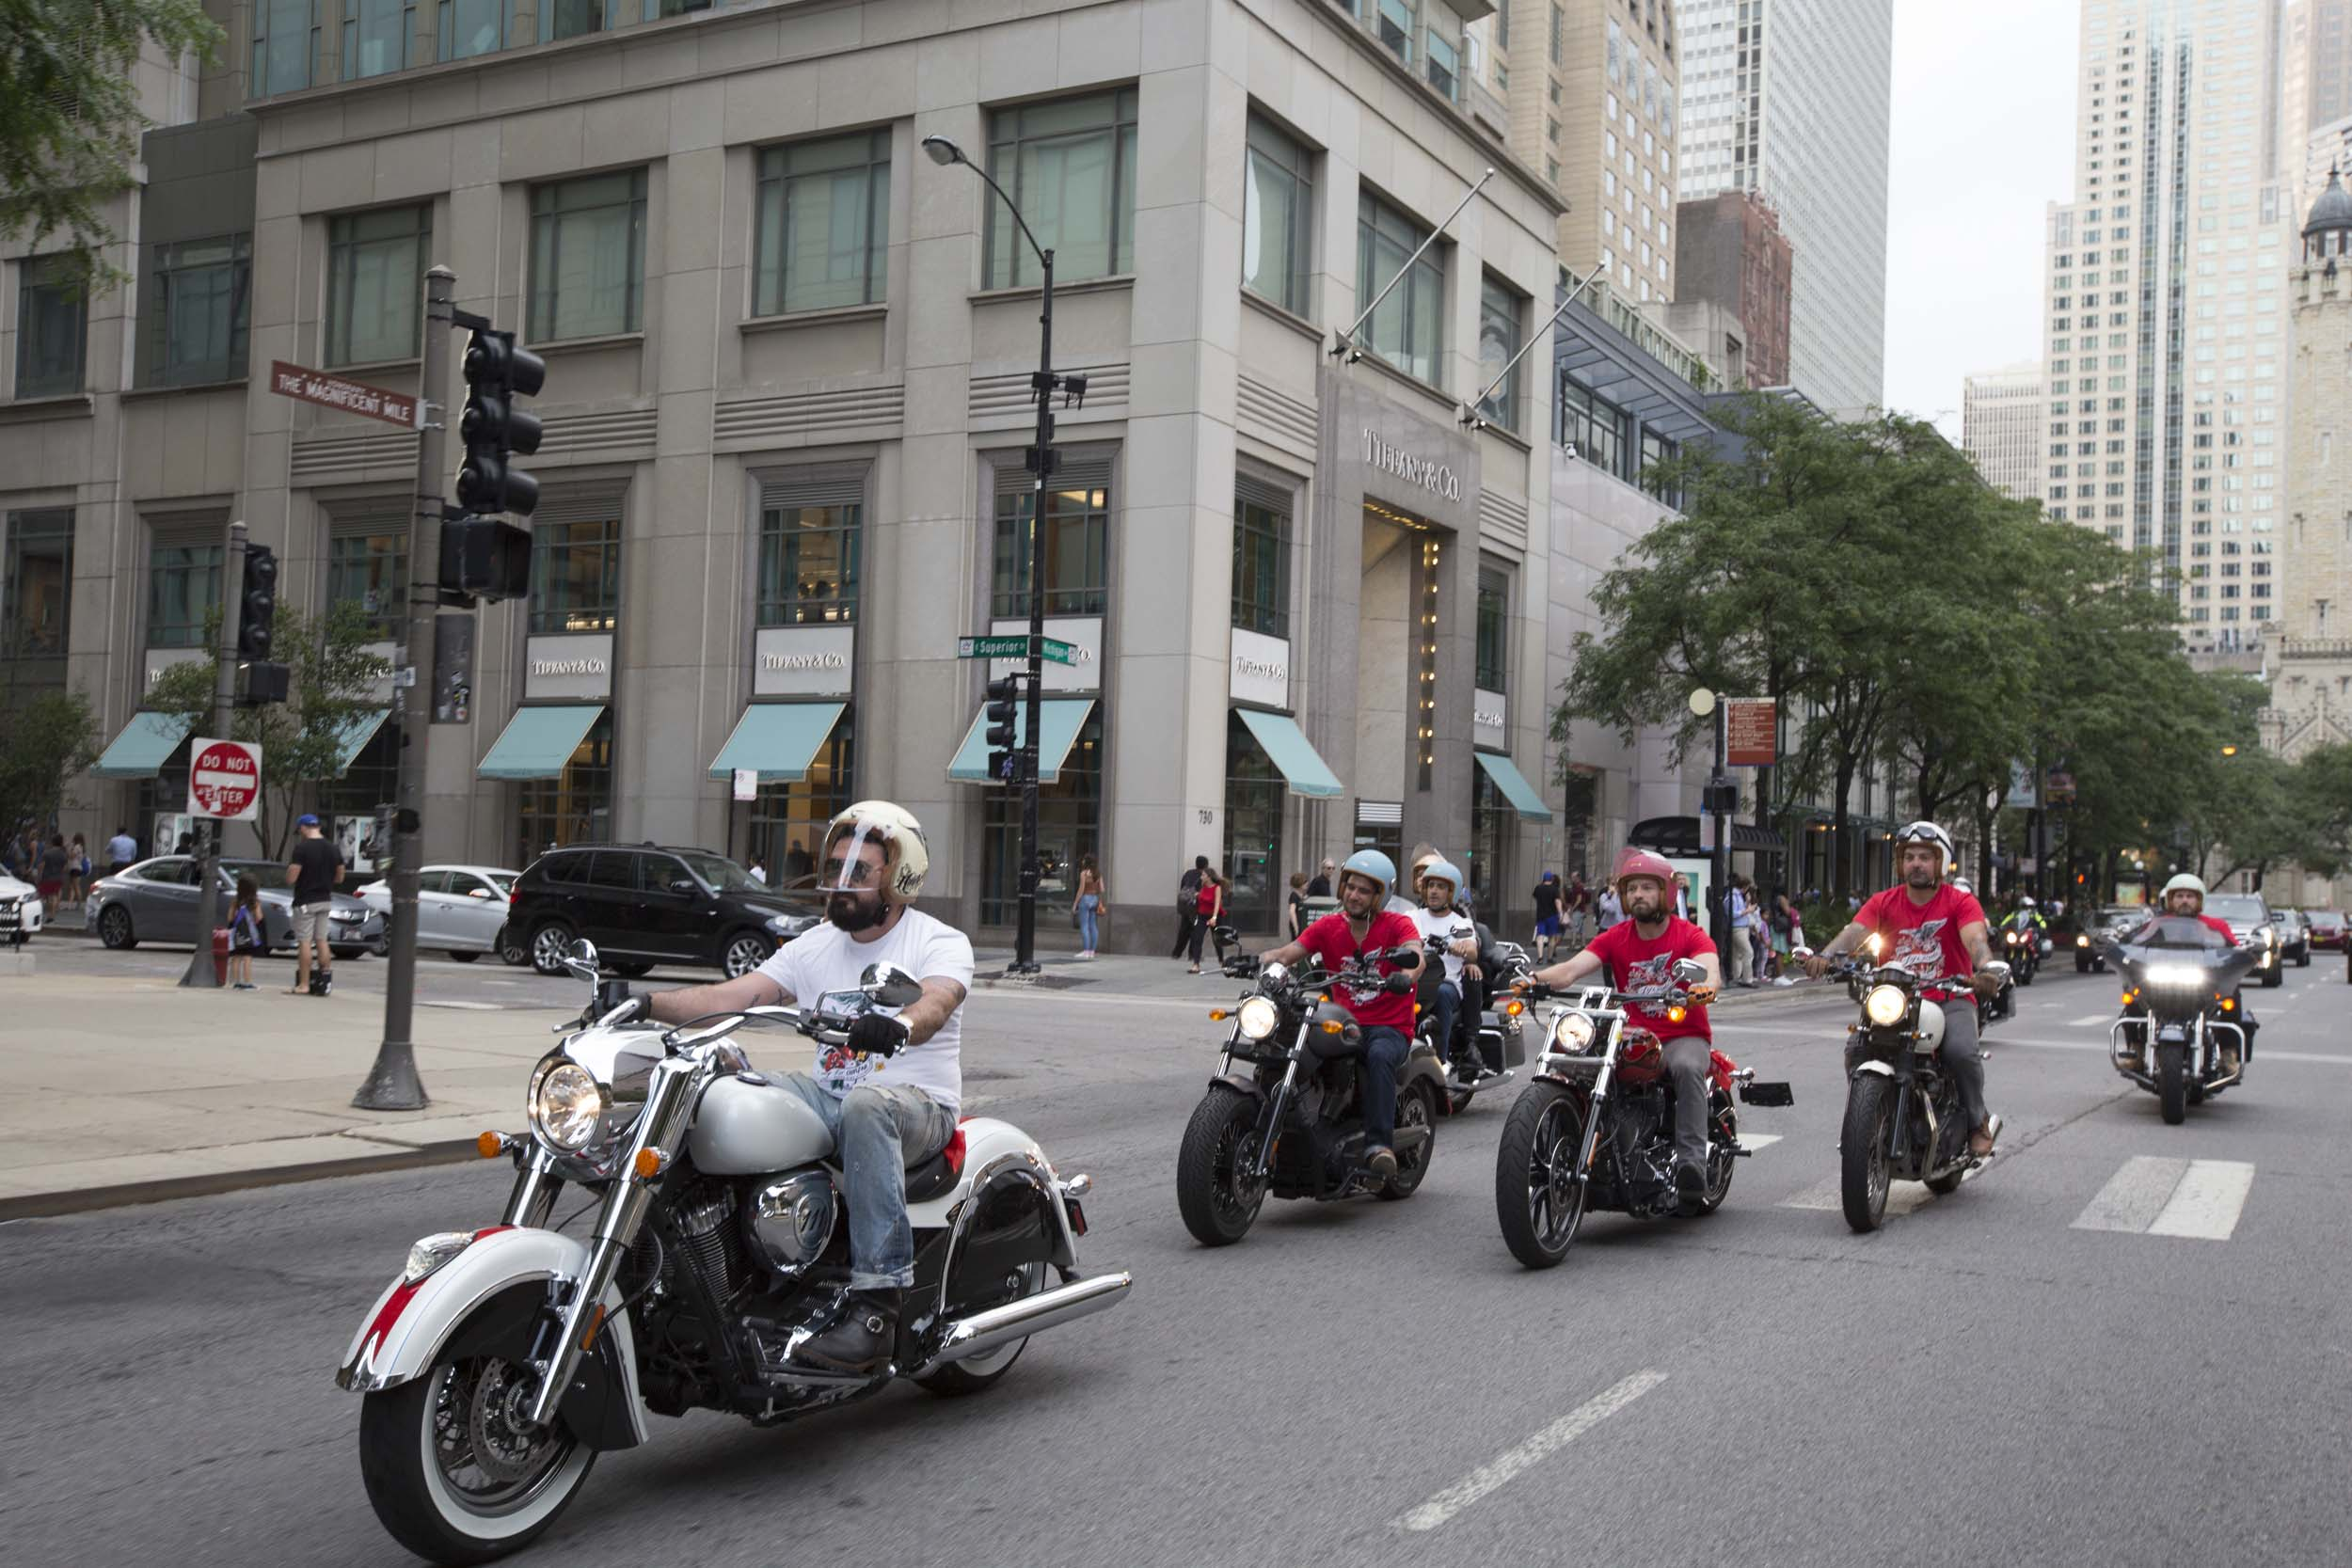 8th Annual Kiehl's LifeRide For amfAR Raises More Than $125,000 For amfAR; Fundraising Continues Through August